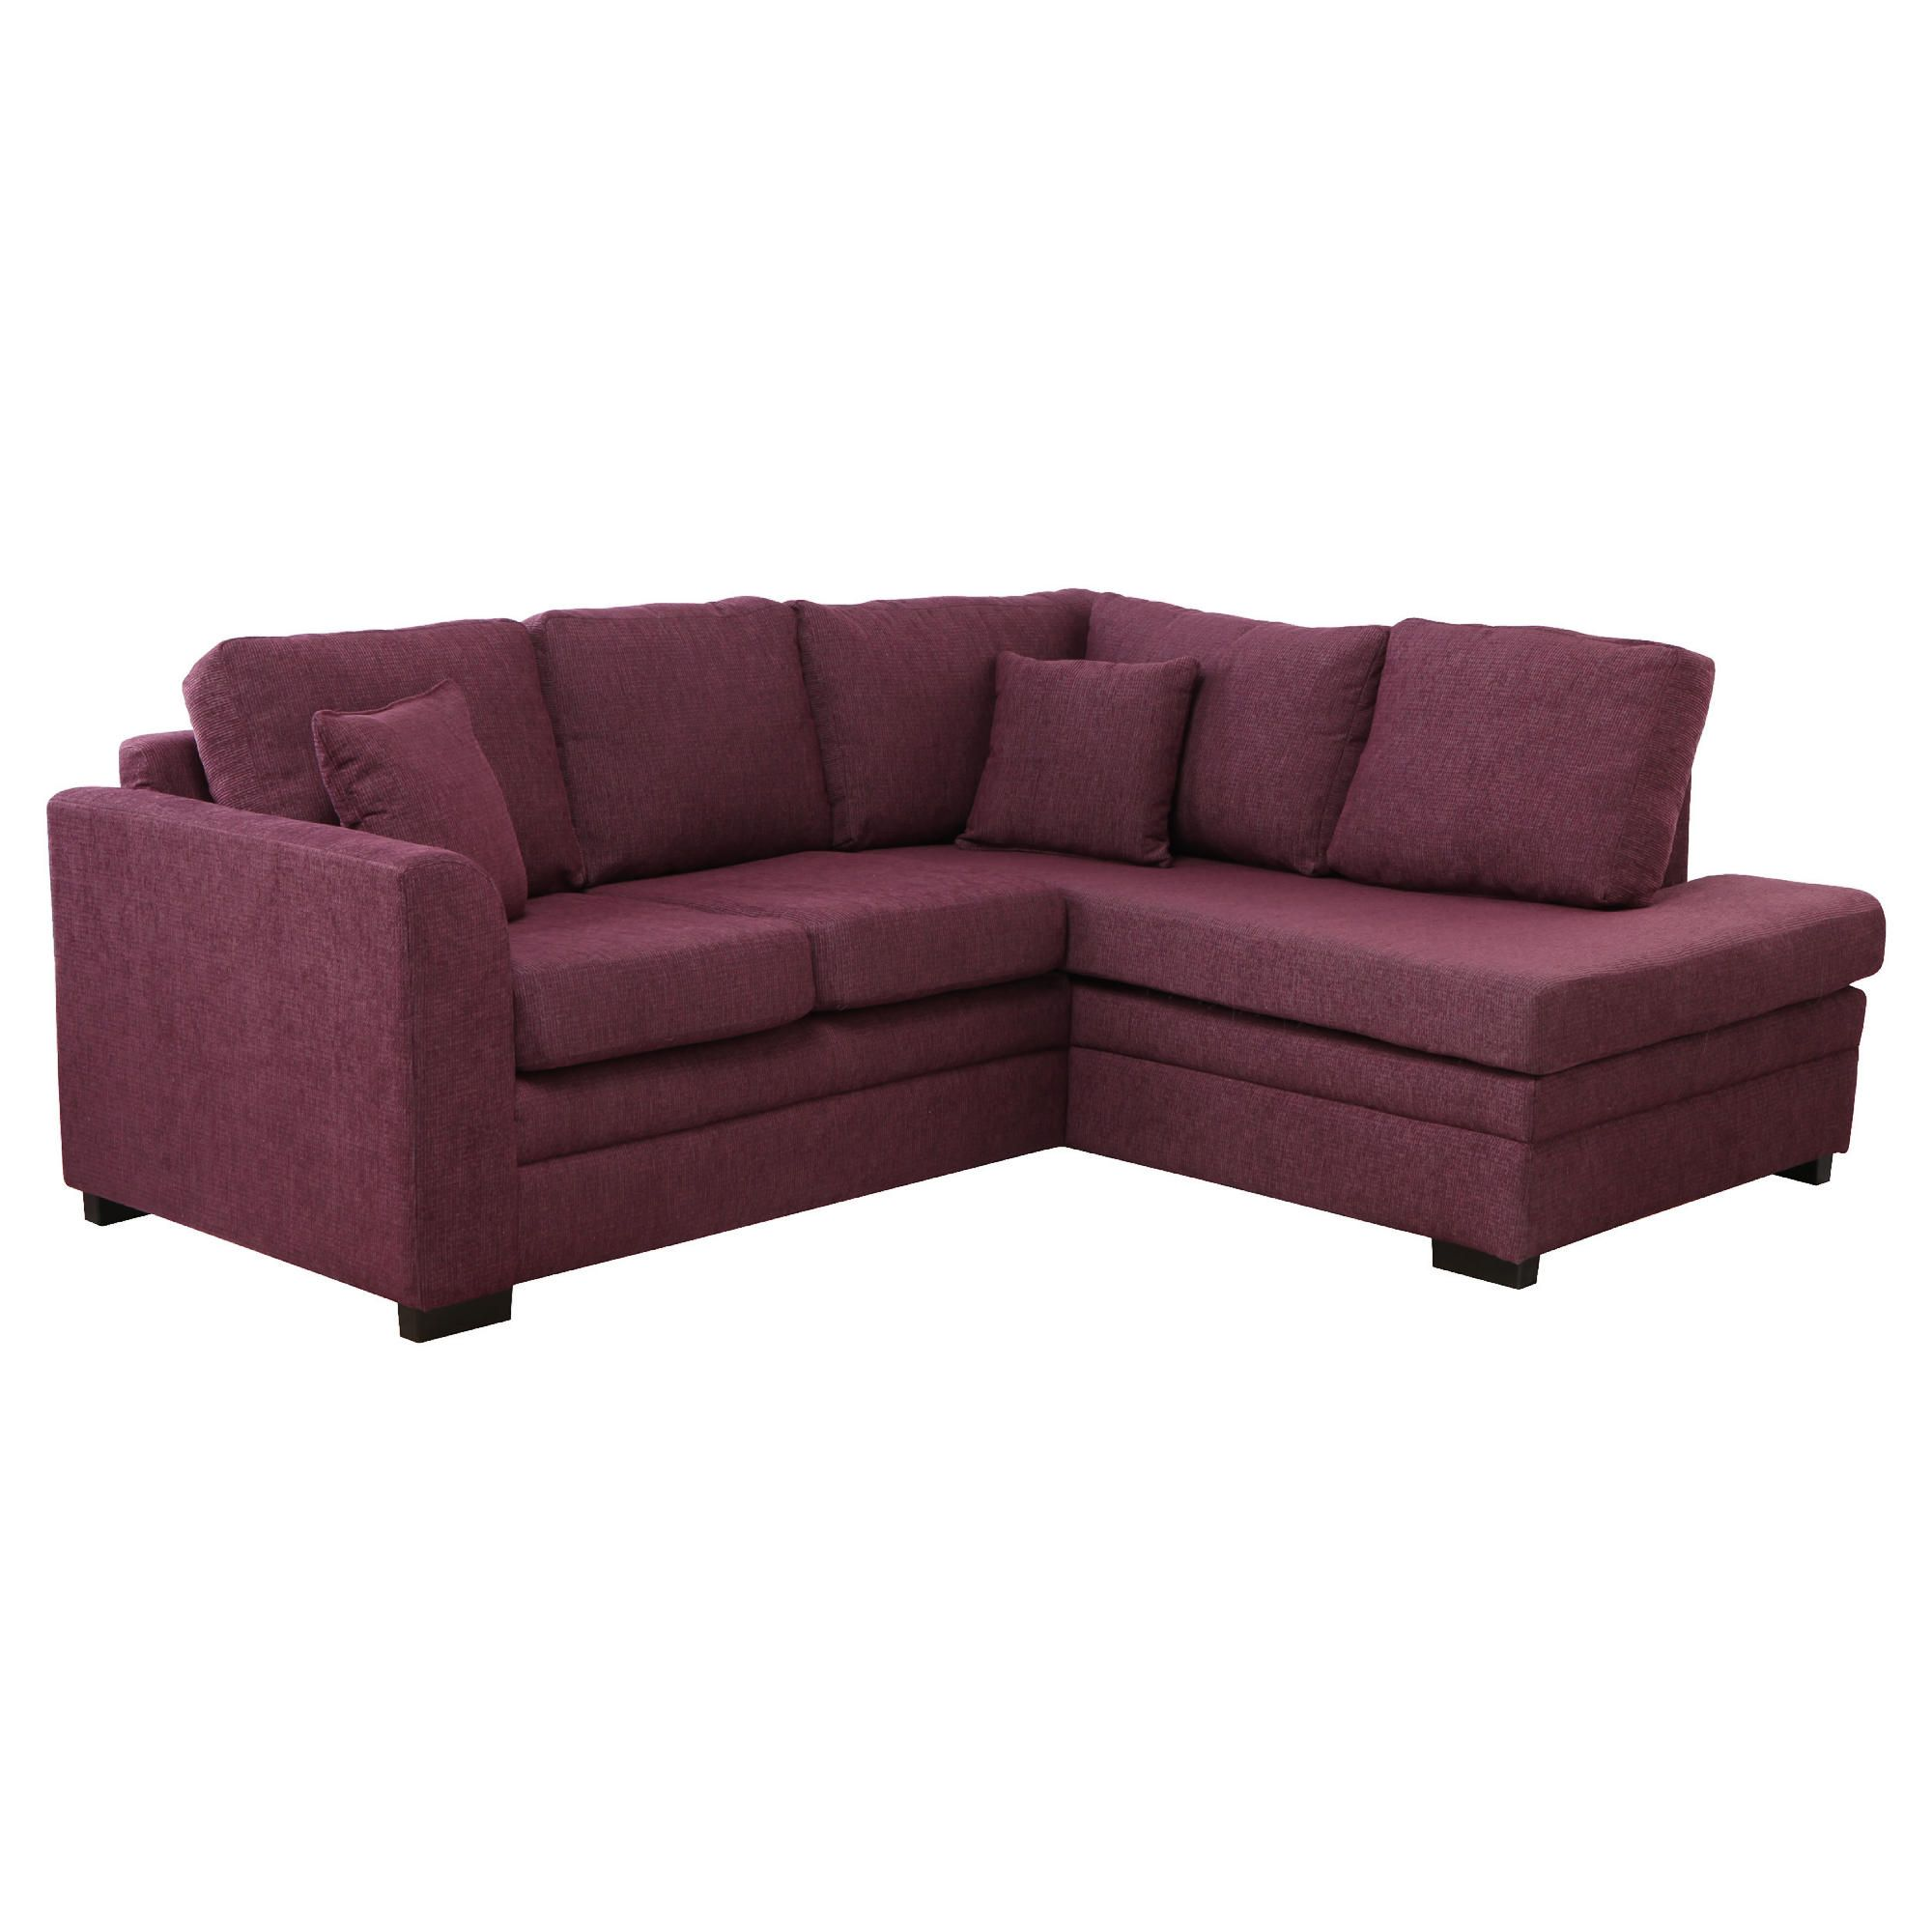 Abbey Corner Fabric Sofa, Plum Right Hand Facing at Tesco Direct